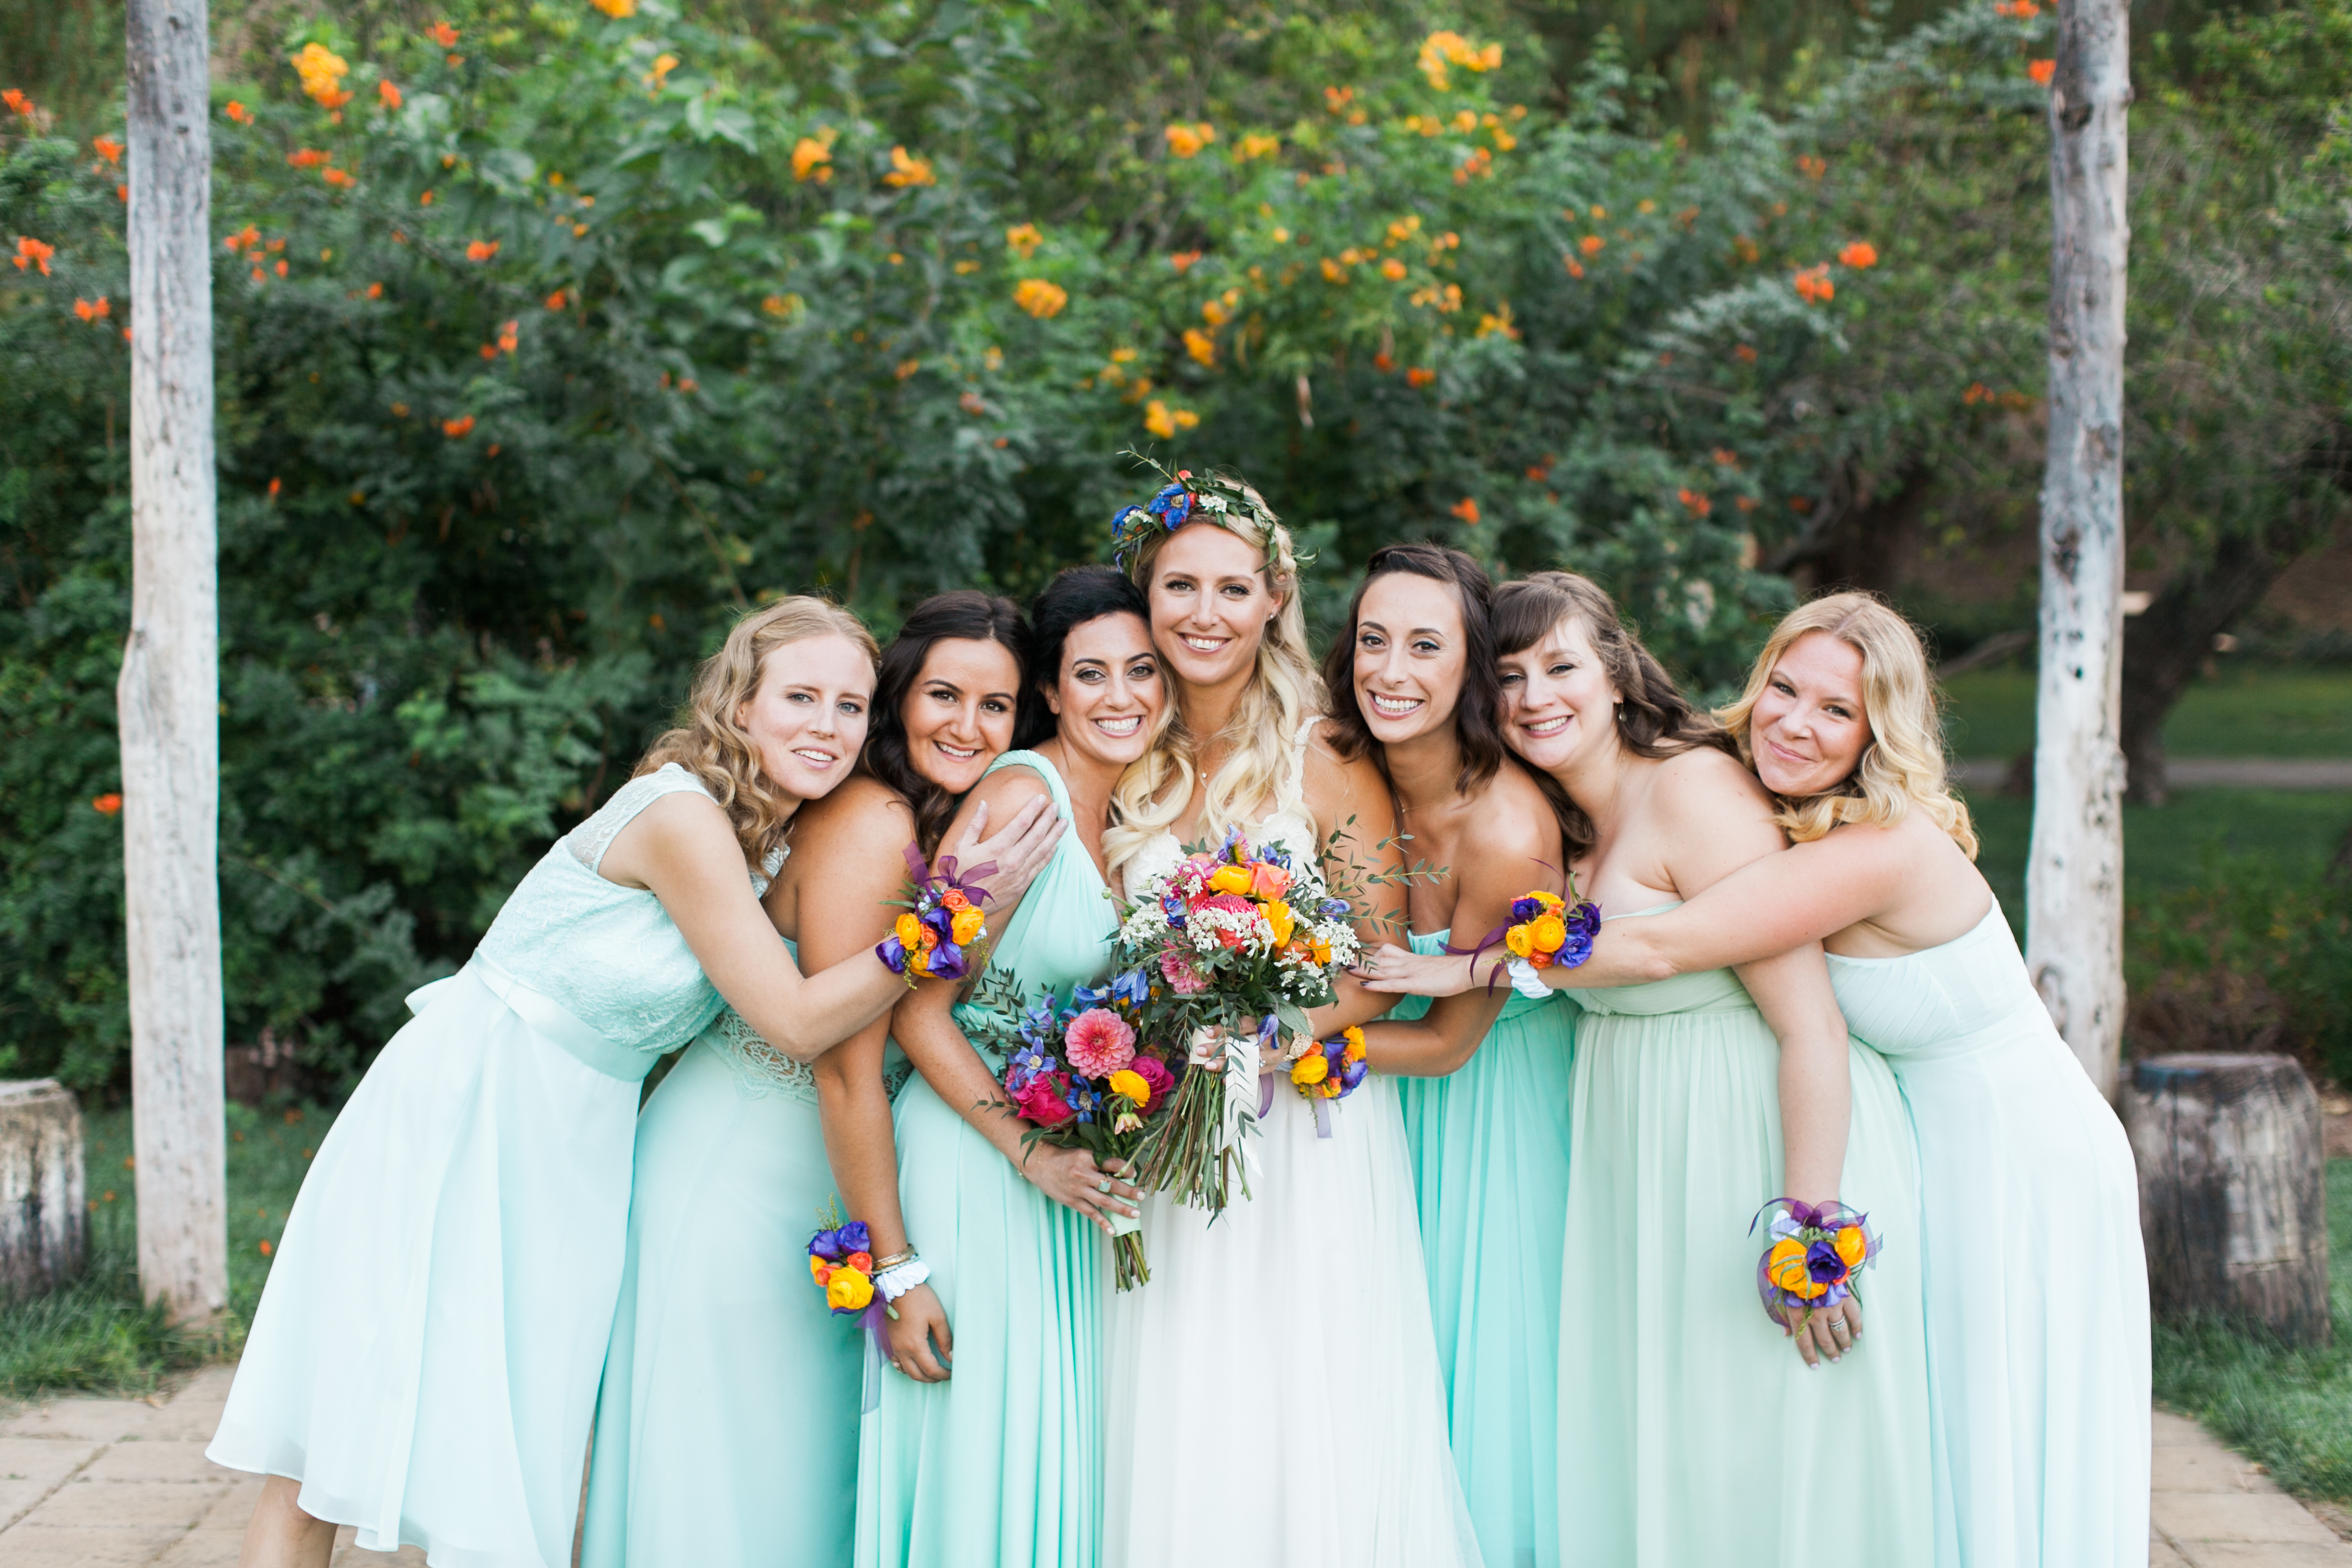 flowersbyazalea_Bride_bouquet_colorful_lace_spanish_romantic_Mint_Bridesmaid_Dresses